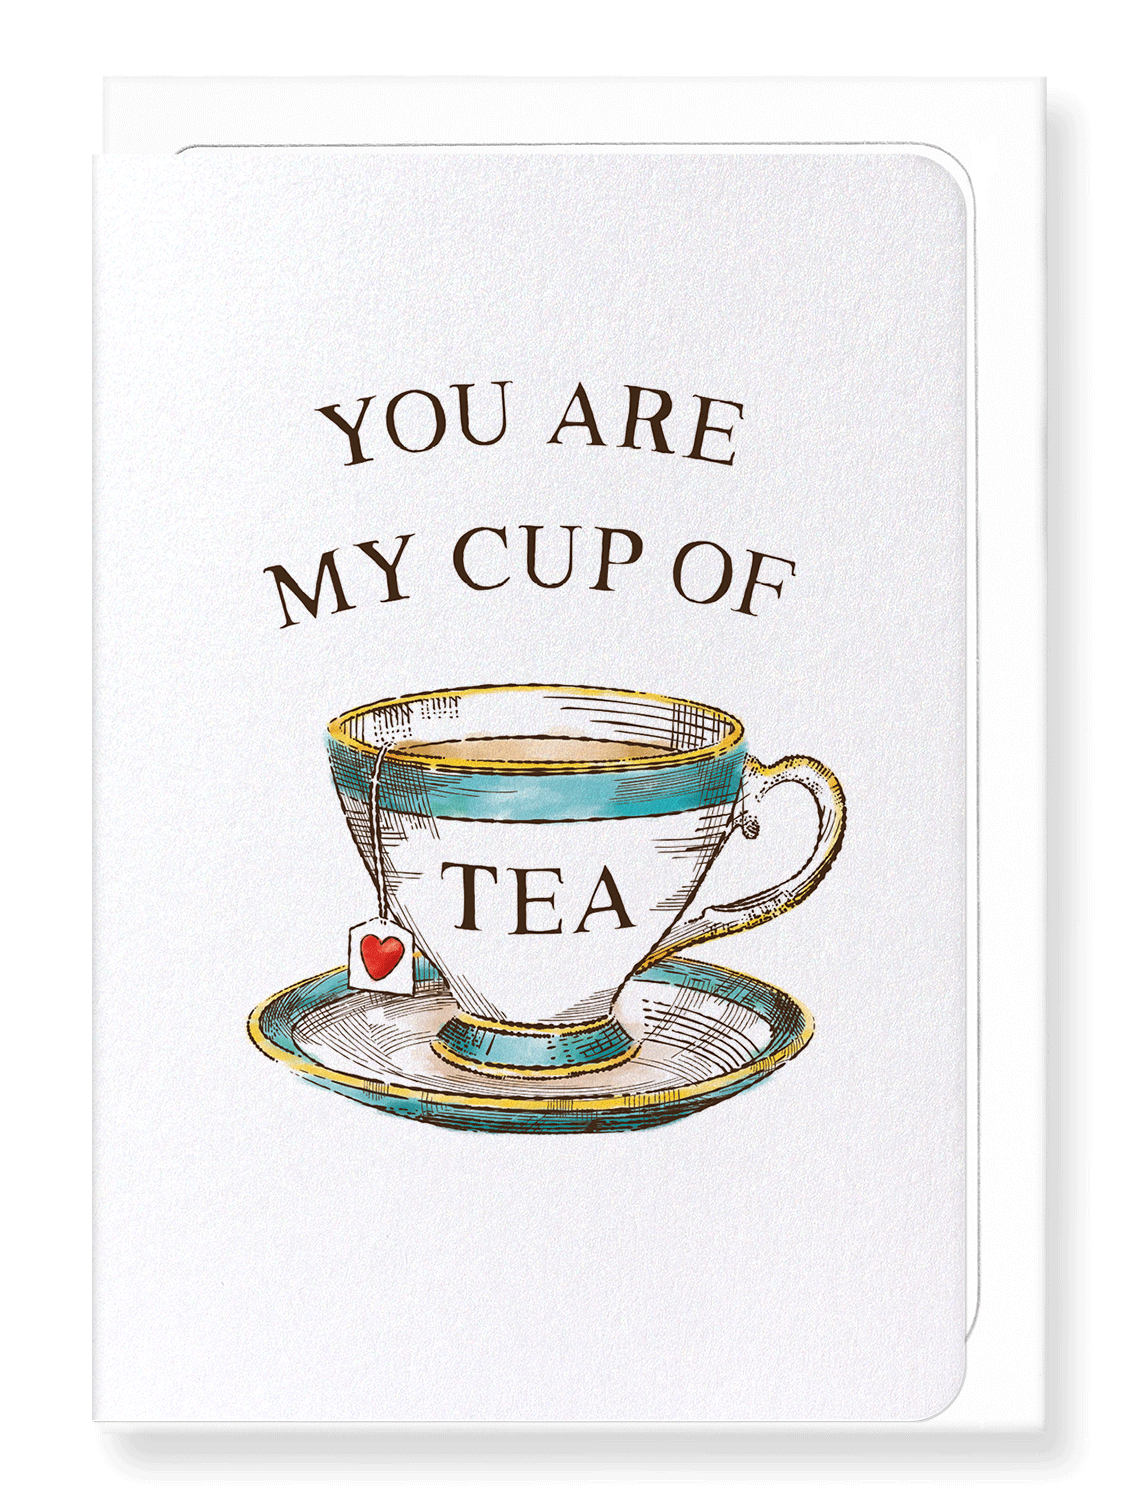 Ezen Designs - My cup of tea - Greeting Card - Front